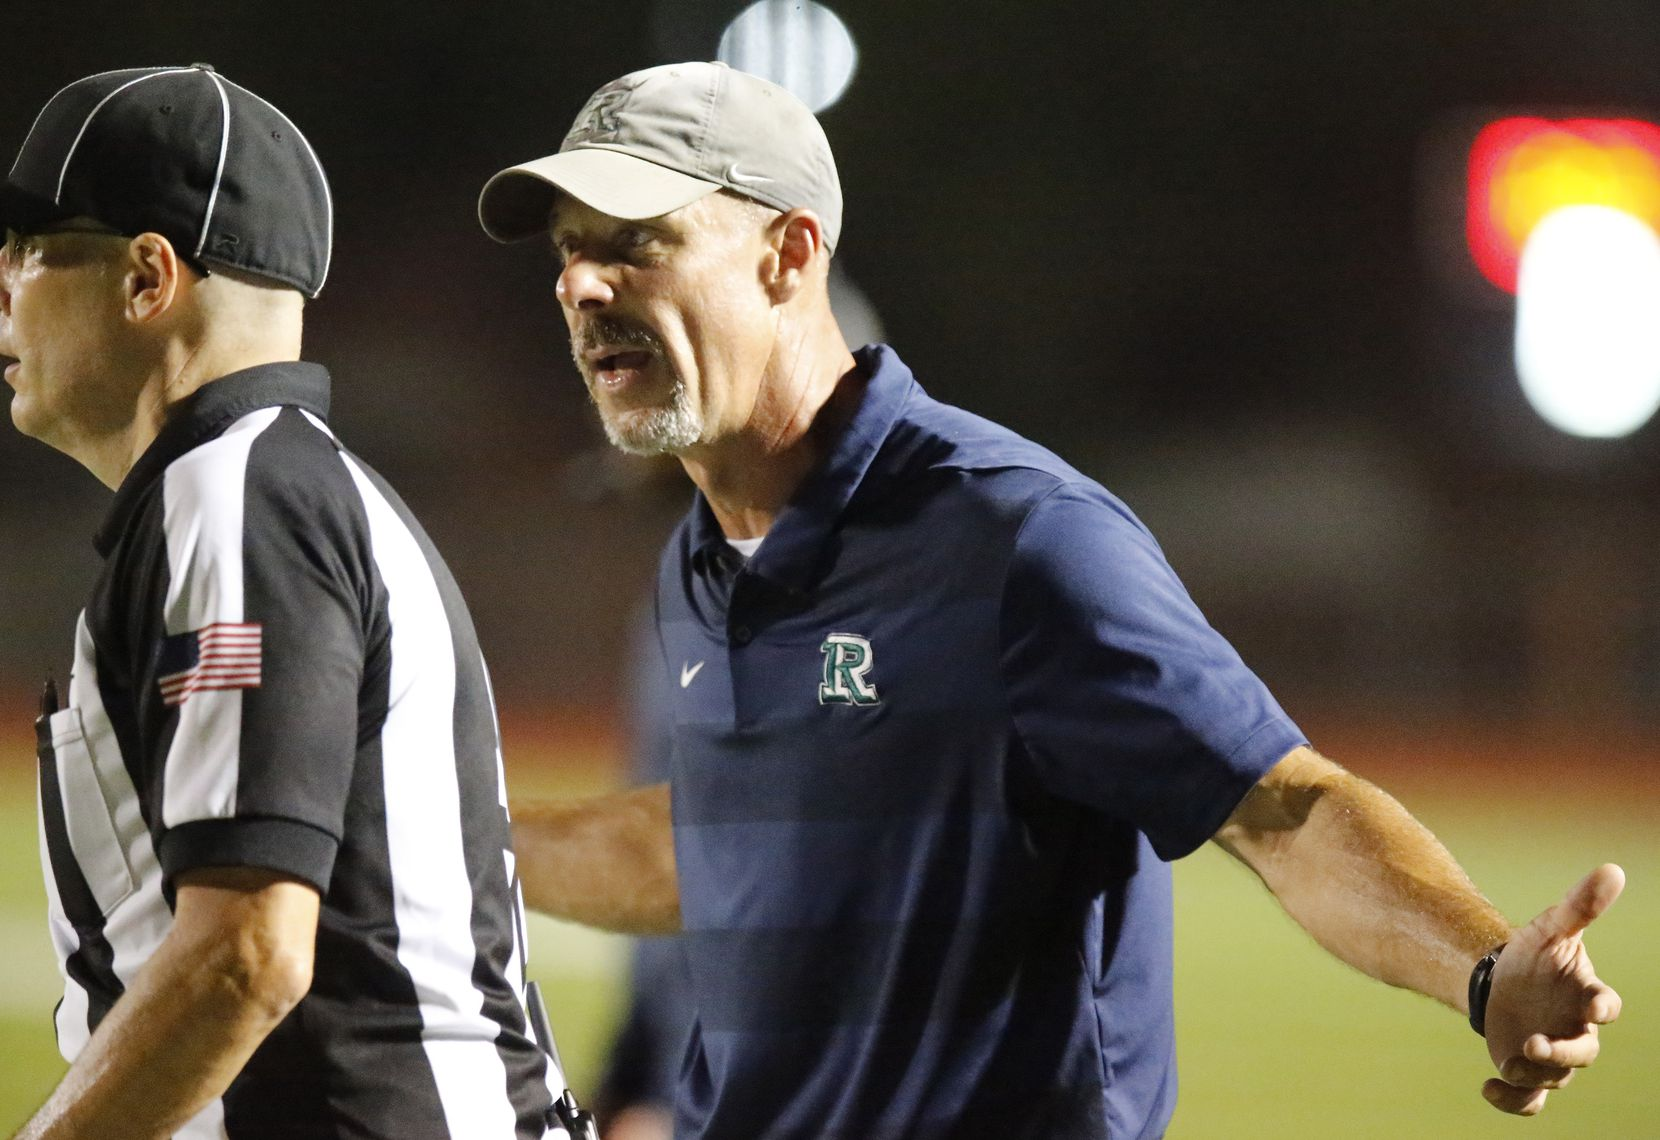 Reedy High School head coach Chad Cole argues his point to no avail near the end of the second half as Reedy High School hosted Frisco Liberty High School at David Kuykendall Stadium in Frisco on Wednesday night, August 26, 2021. (Stewart F. House/Special Contributor)